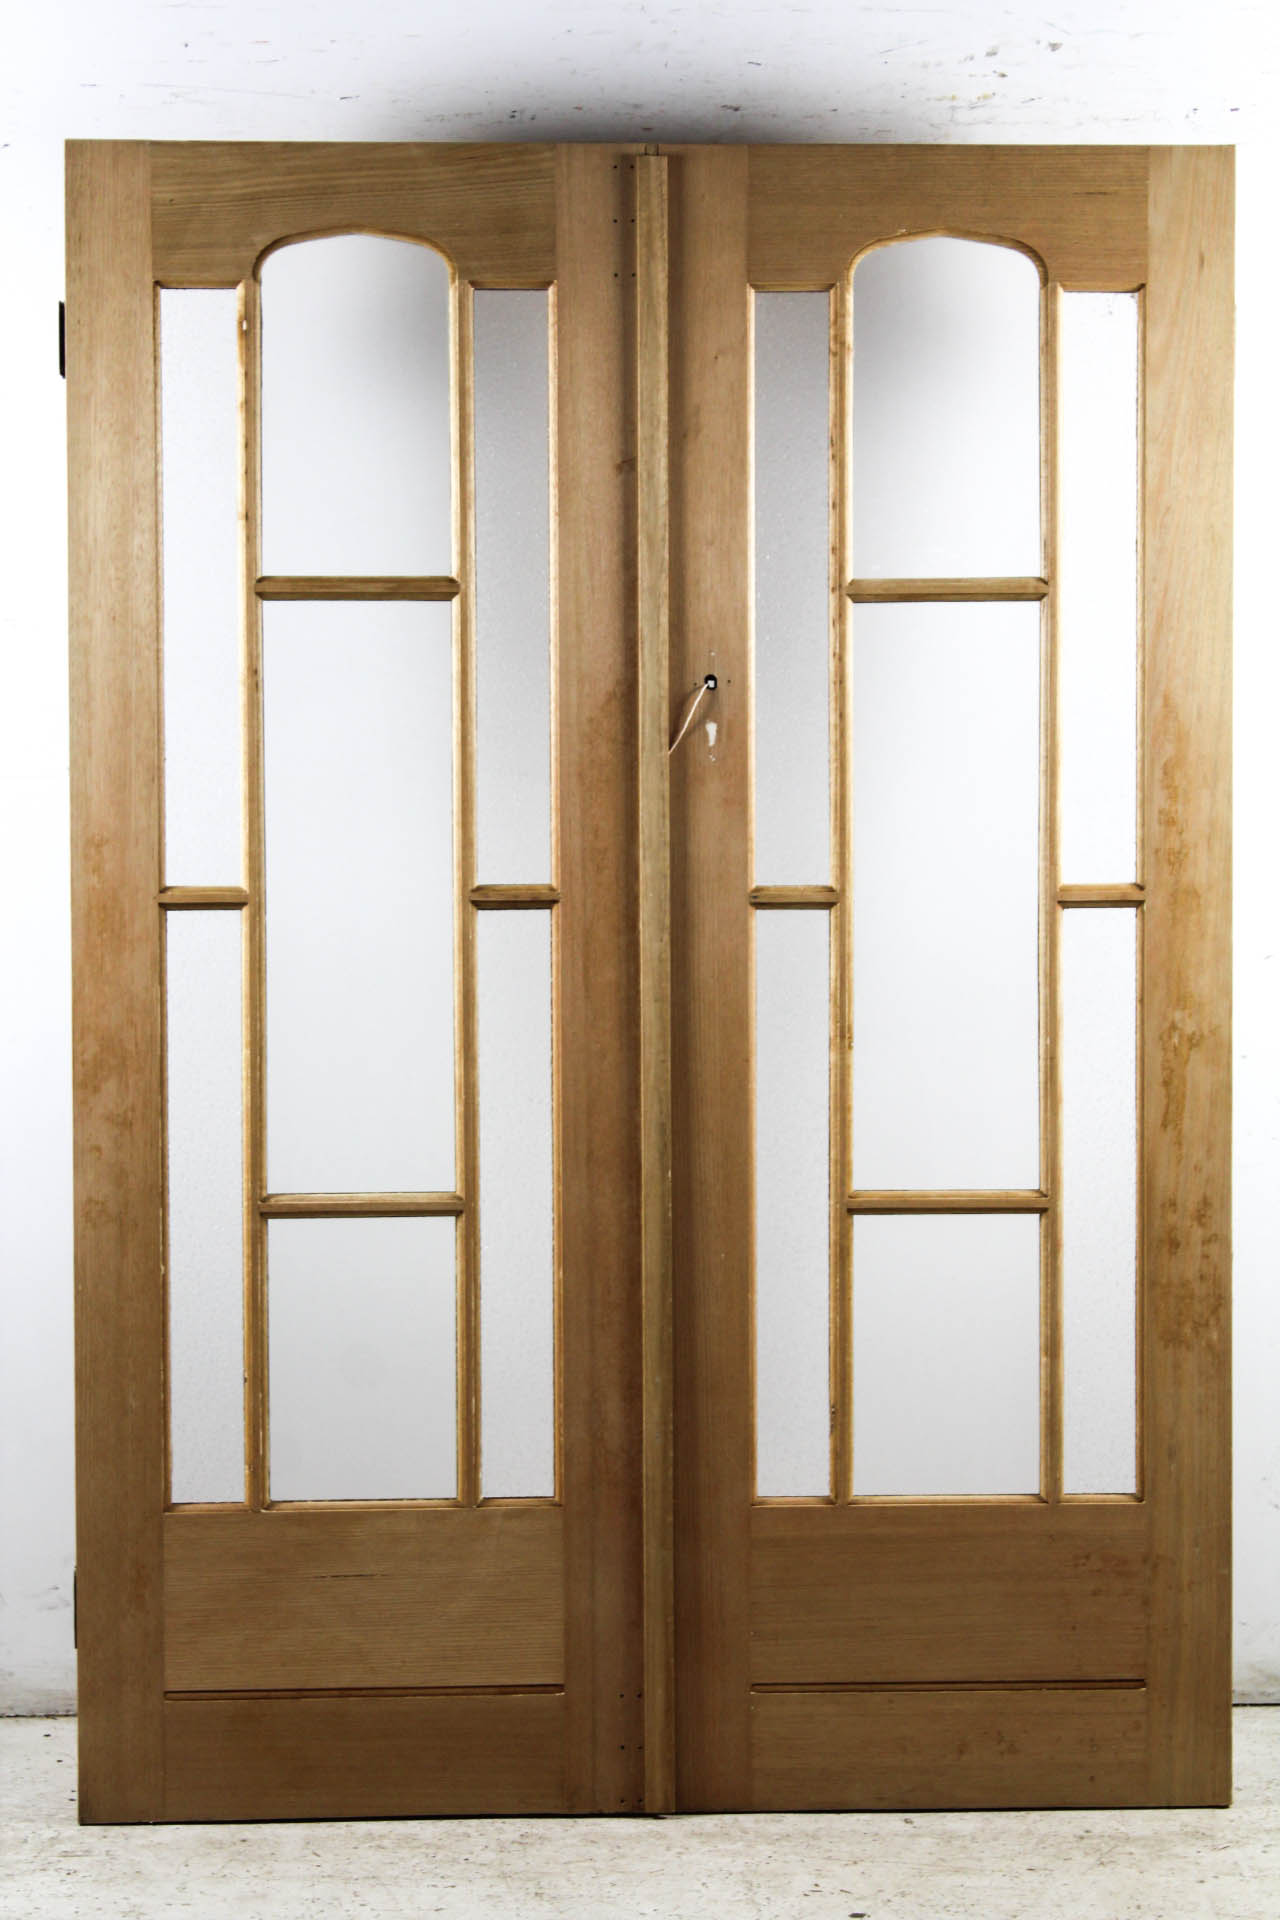 1920 S Double Door Set Renovators Paradise